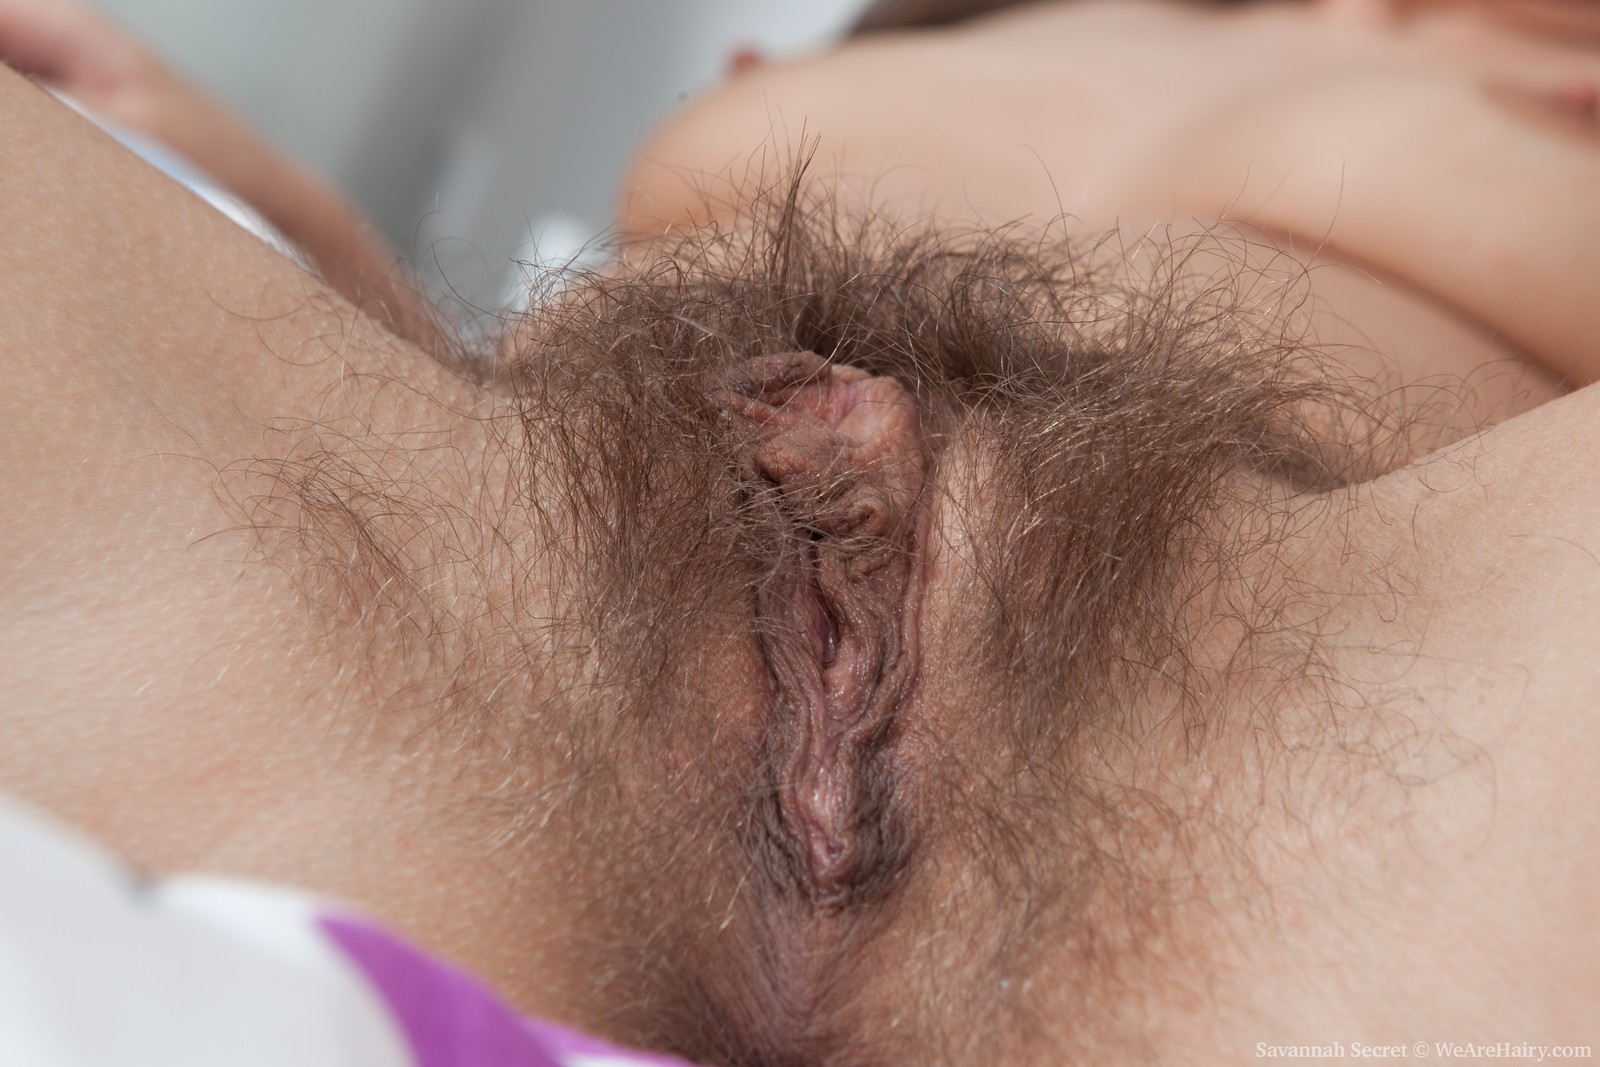 passionate fucking that is not seen as of yet